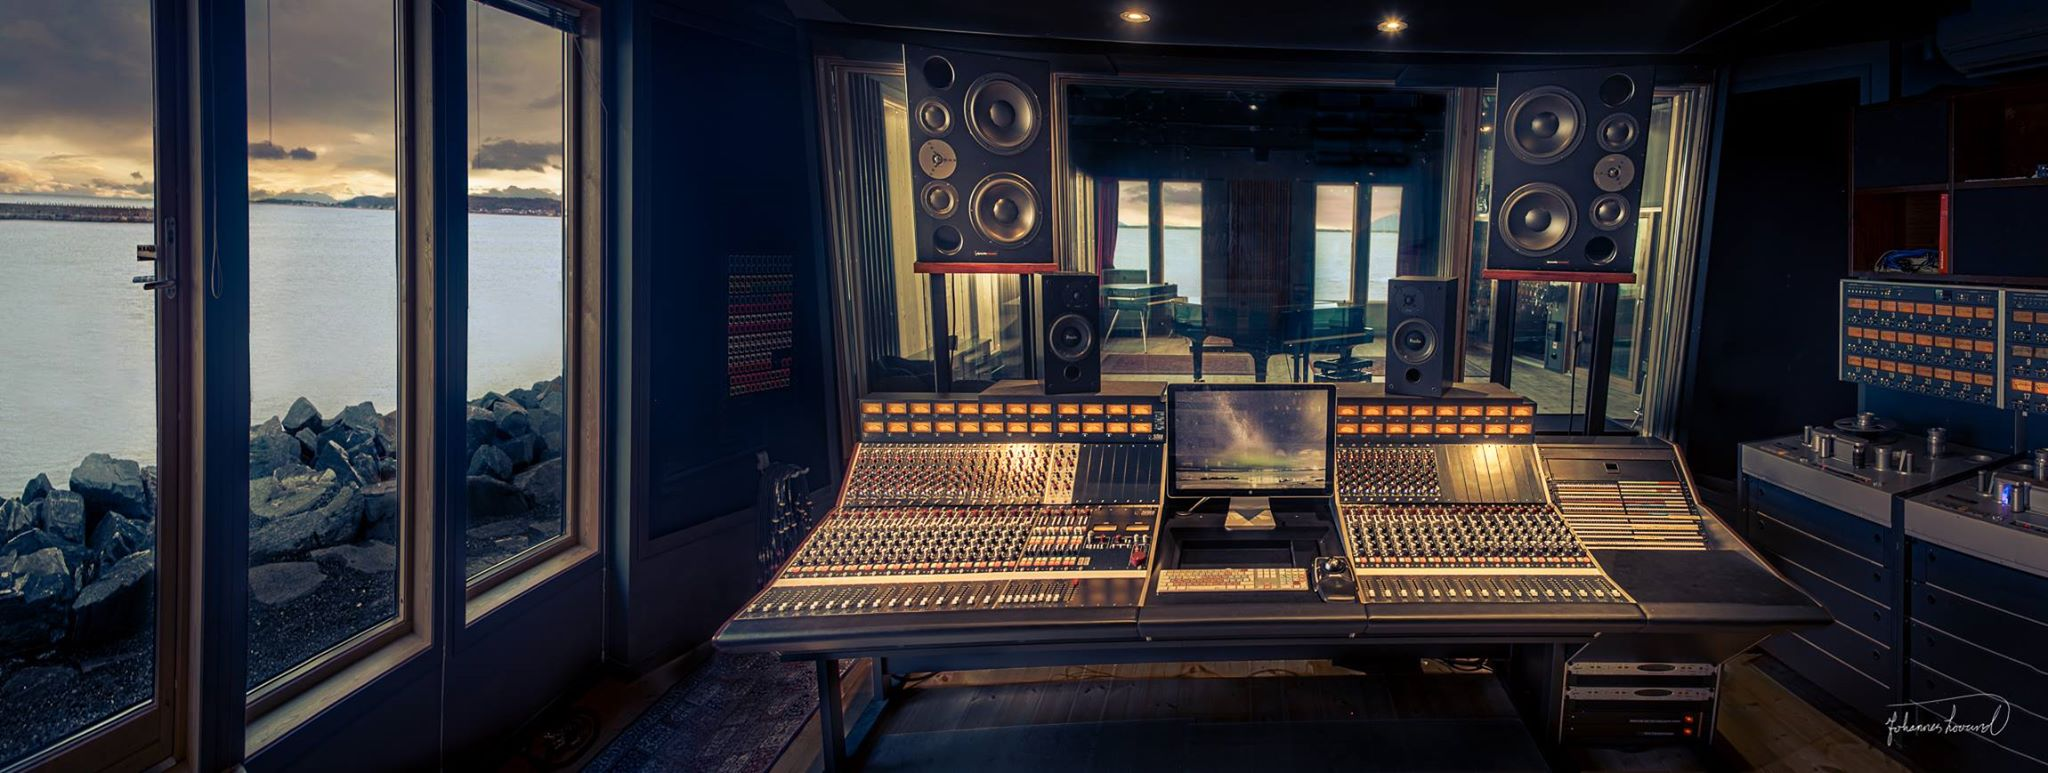 Ocean Sound Recording Studio - control desk. Image courtesy of OSR